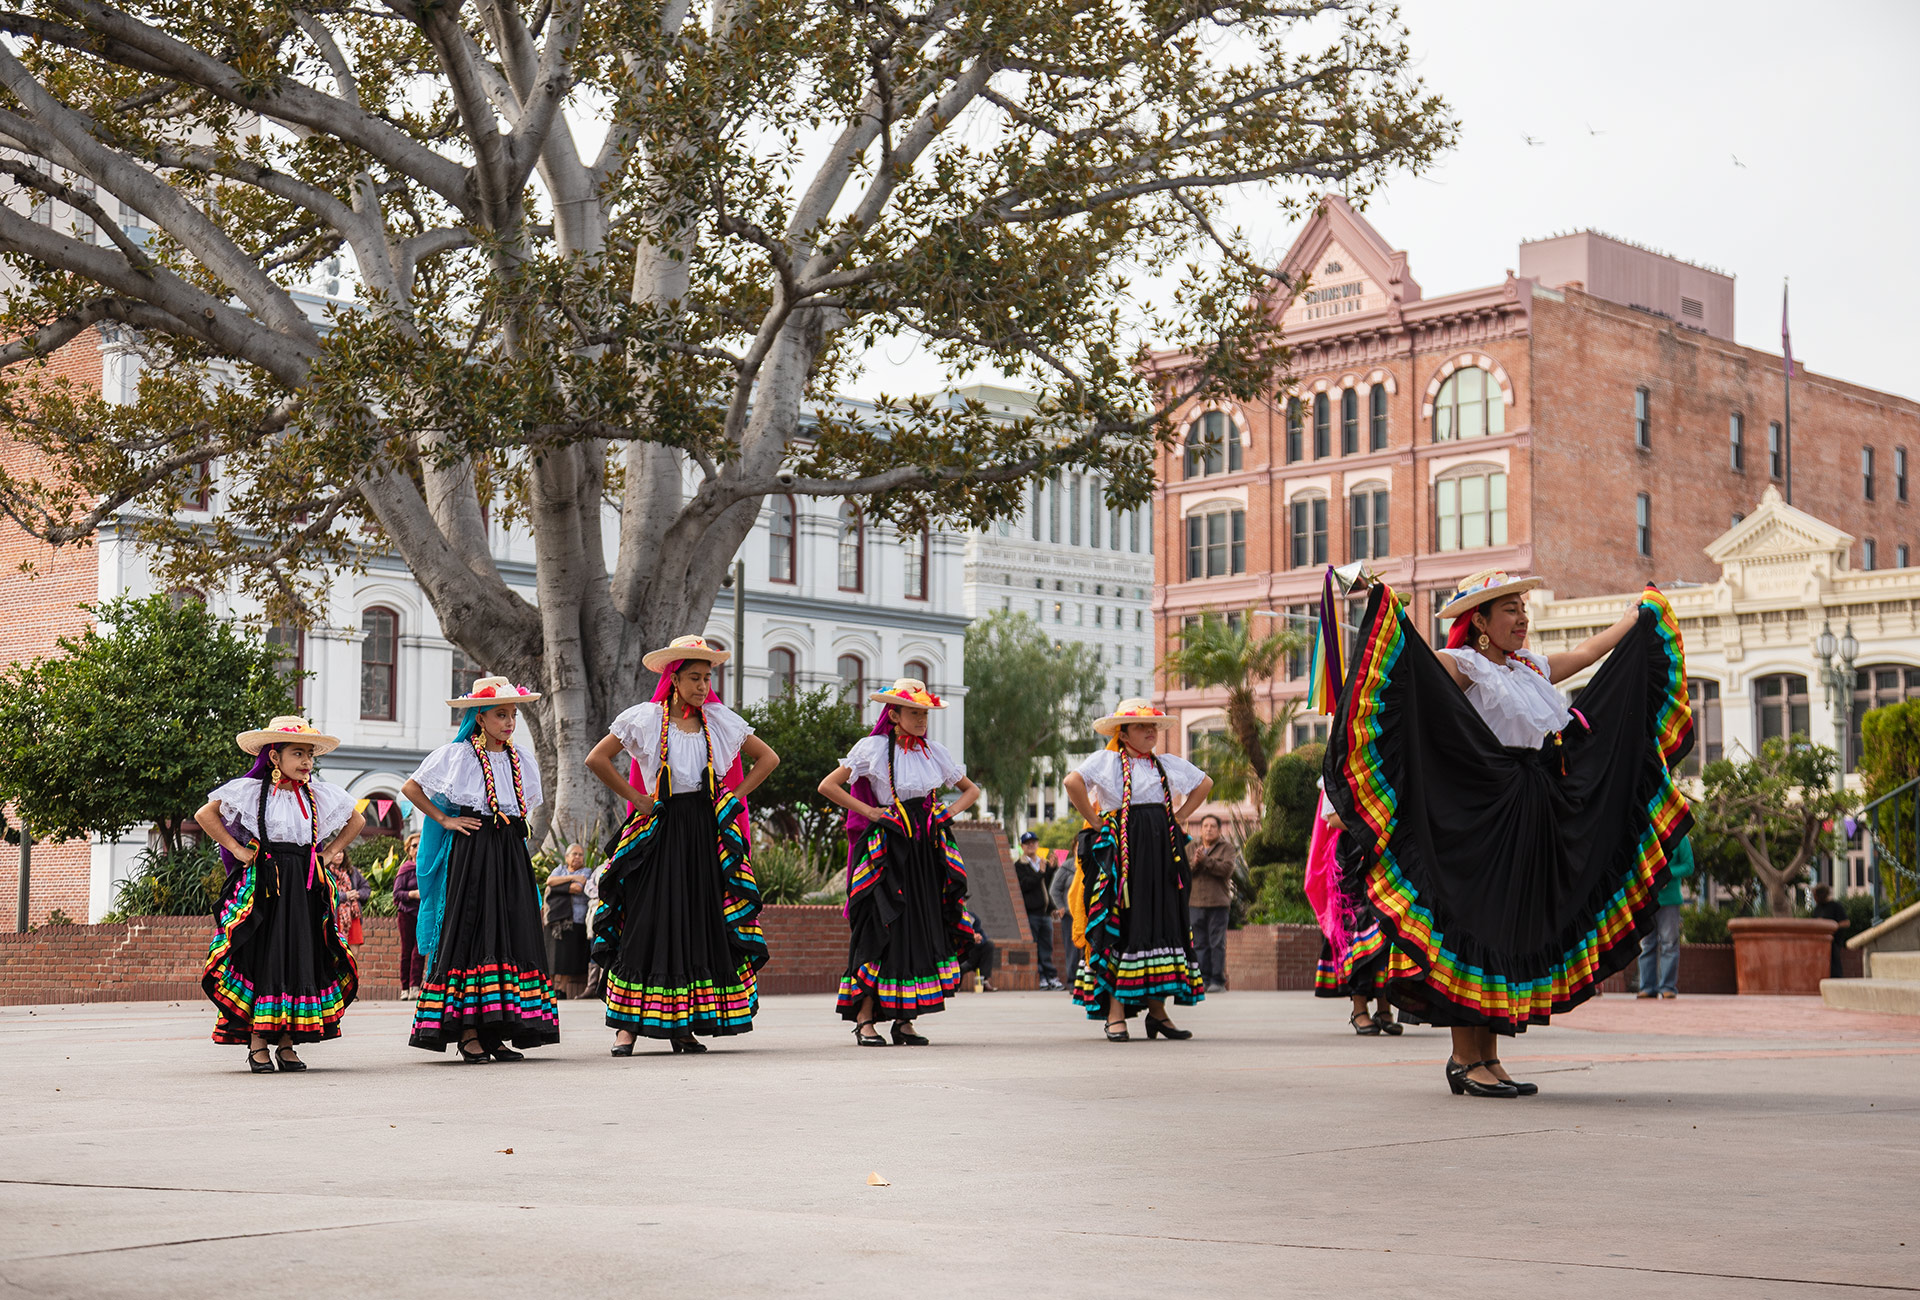 Sunday dance at Plaza Olvera with traditional costumes